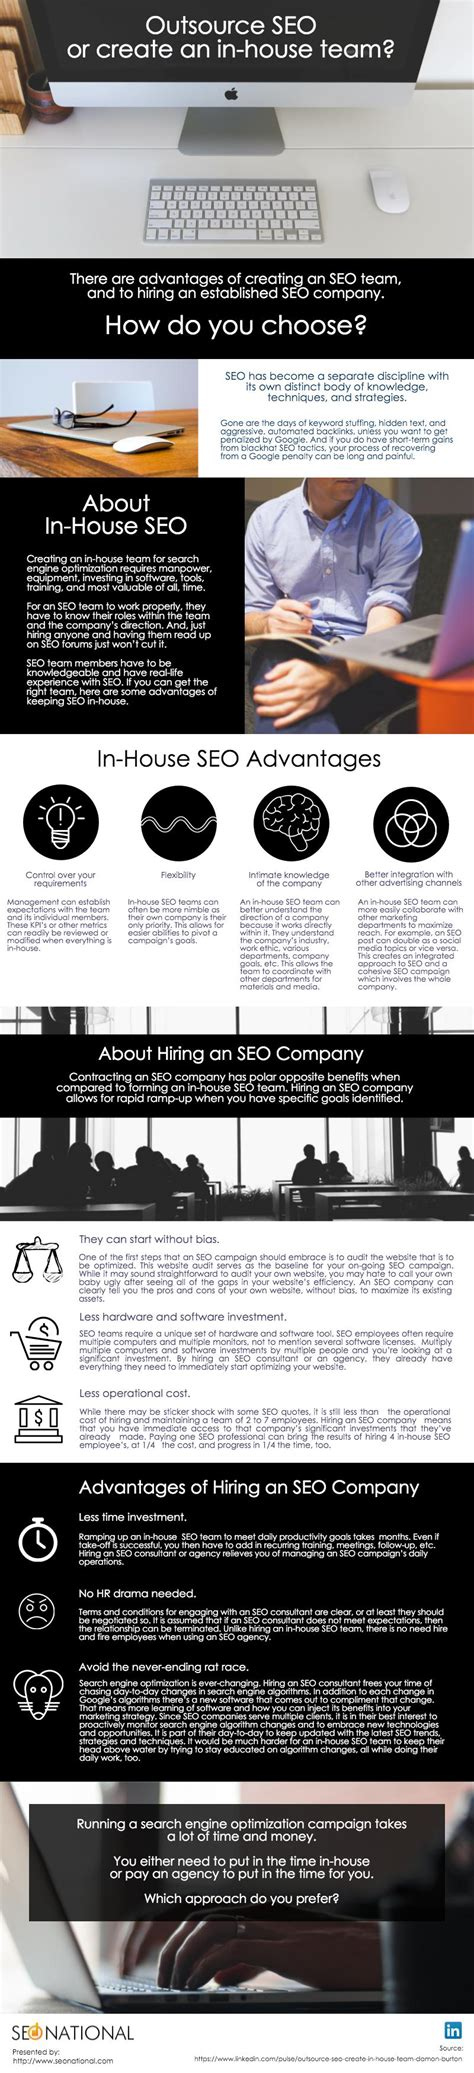 outsource seo outsource seo or keep in house infographic